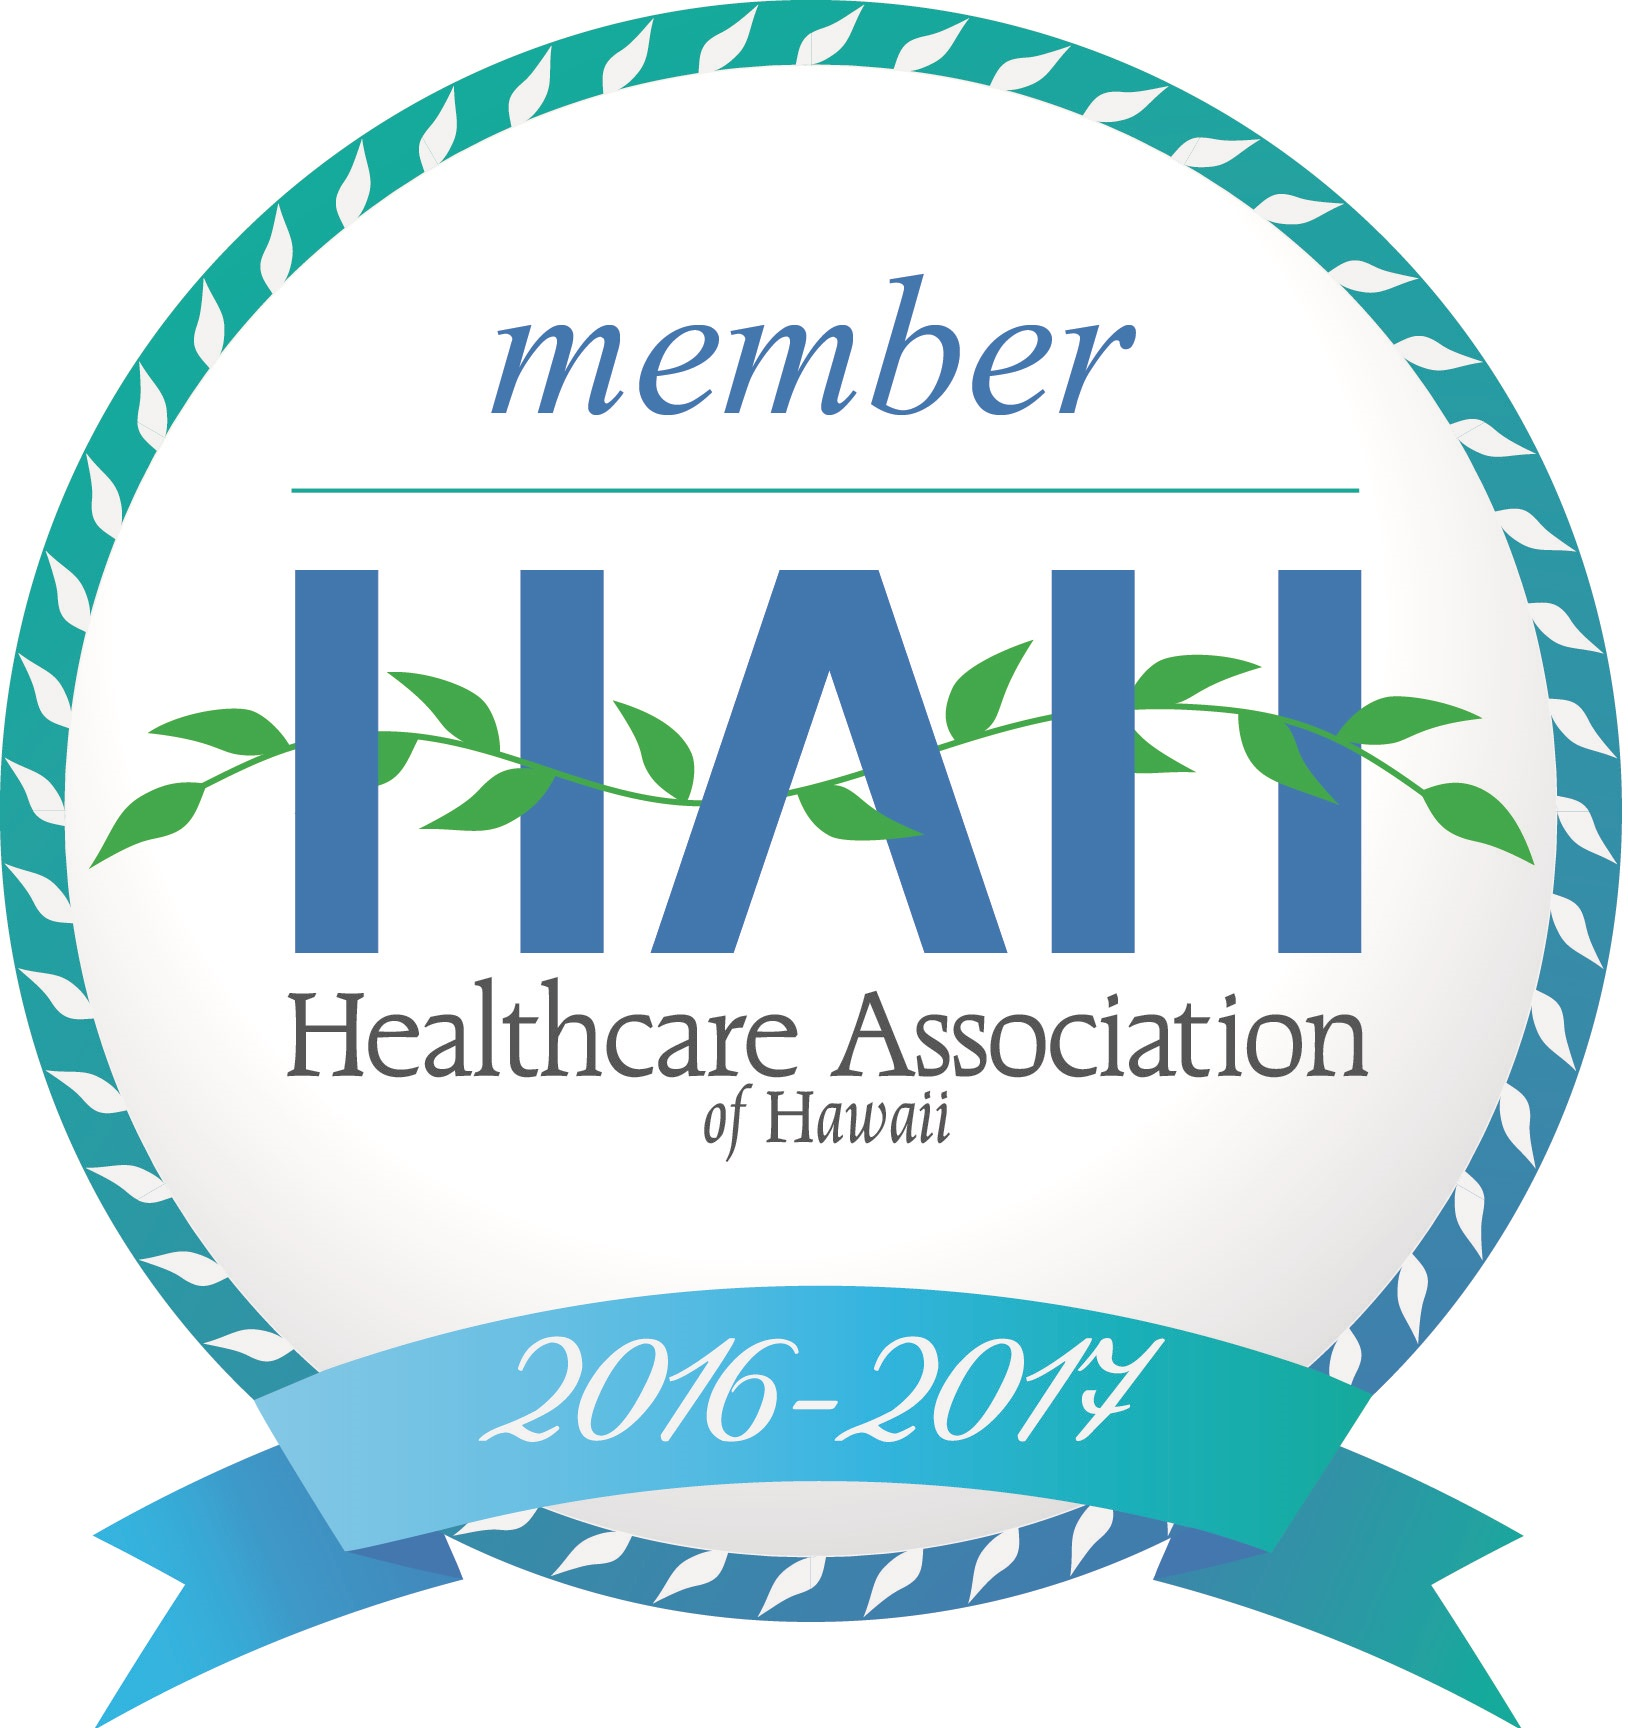 member of the Healthcare Association of Hawaii for 2016-17